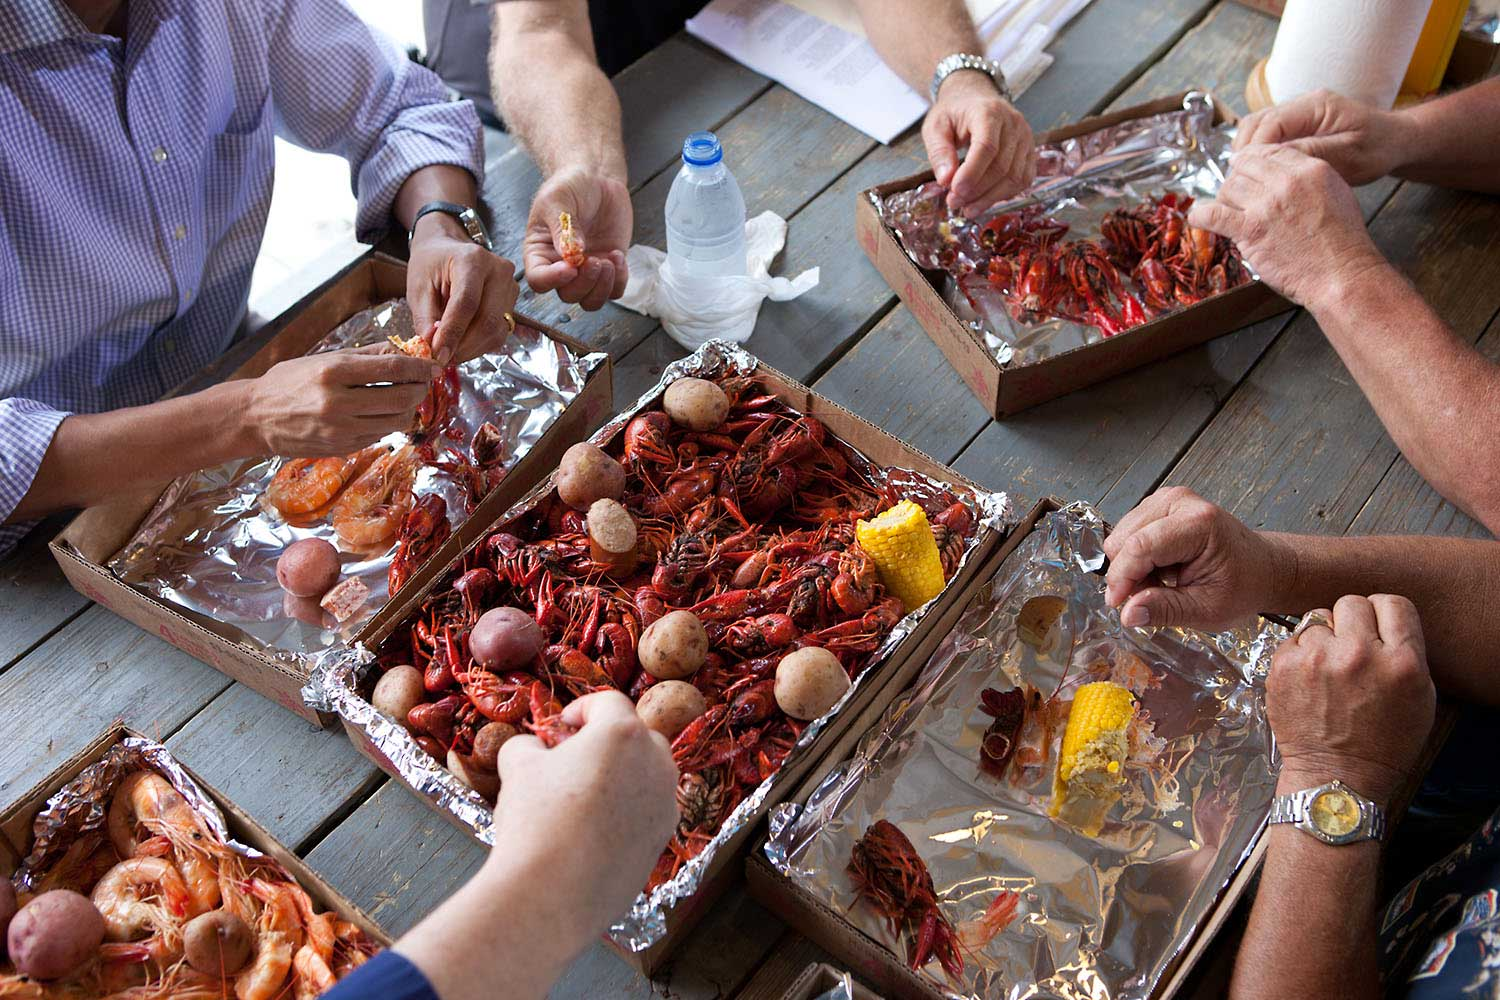 To call attention to the safety of the seafood in the Gulf Coast after the BP oil spill, the President ate some shrimp and crawfish with locals in Grand Isle, La., June 4, 2010. I noticed all the hands digging into the food and thought it made an interesting angle.